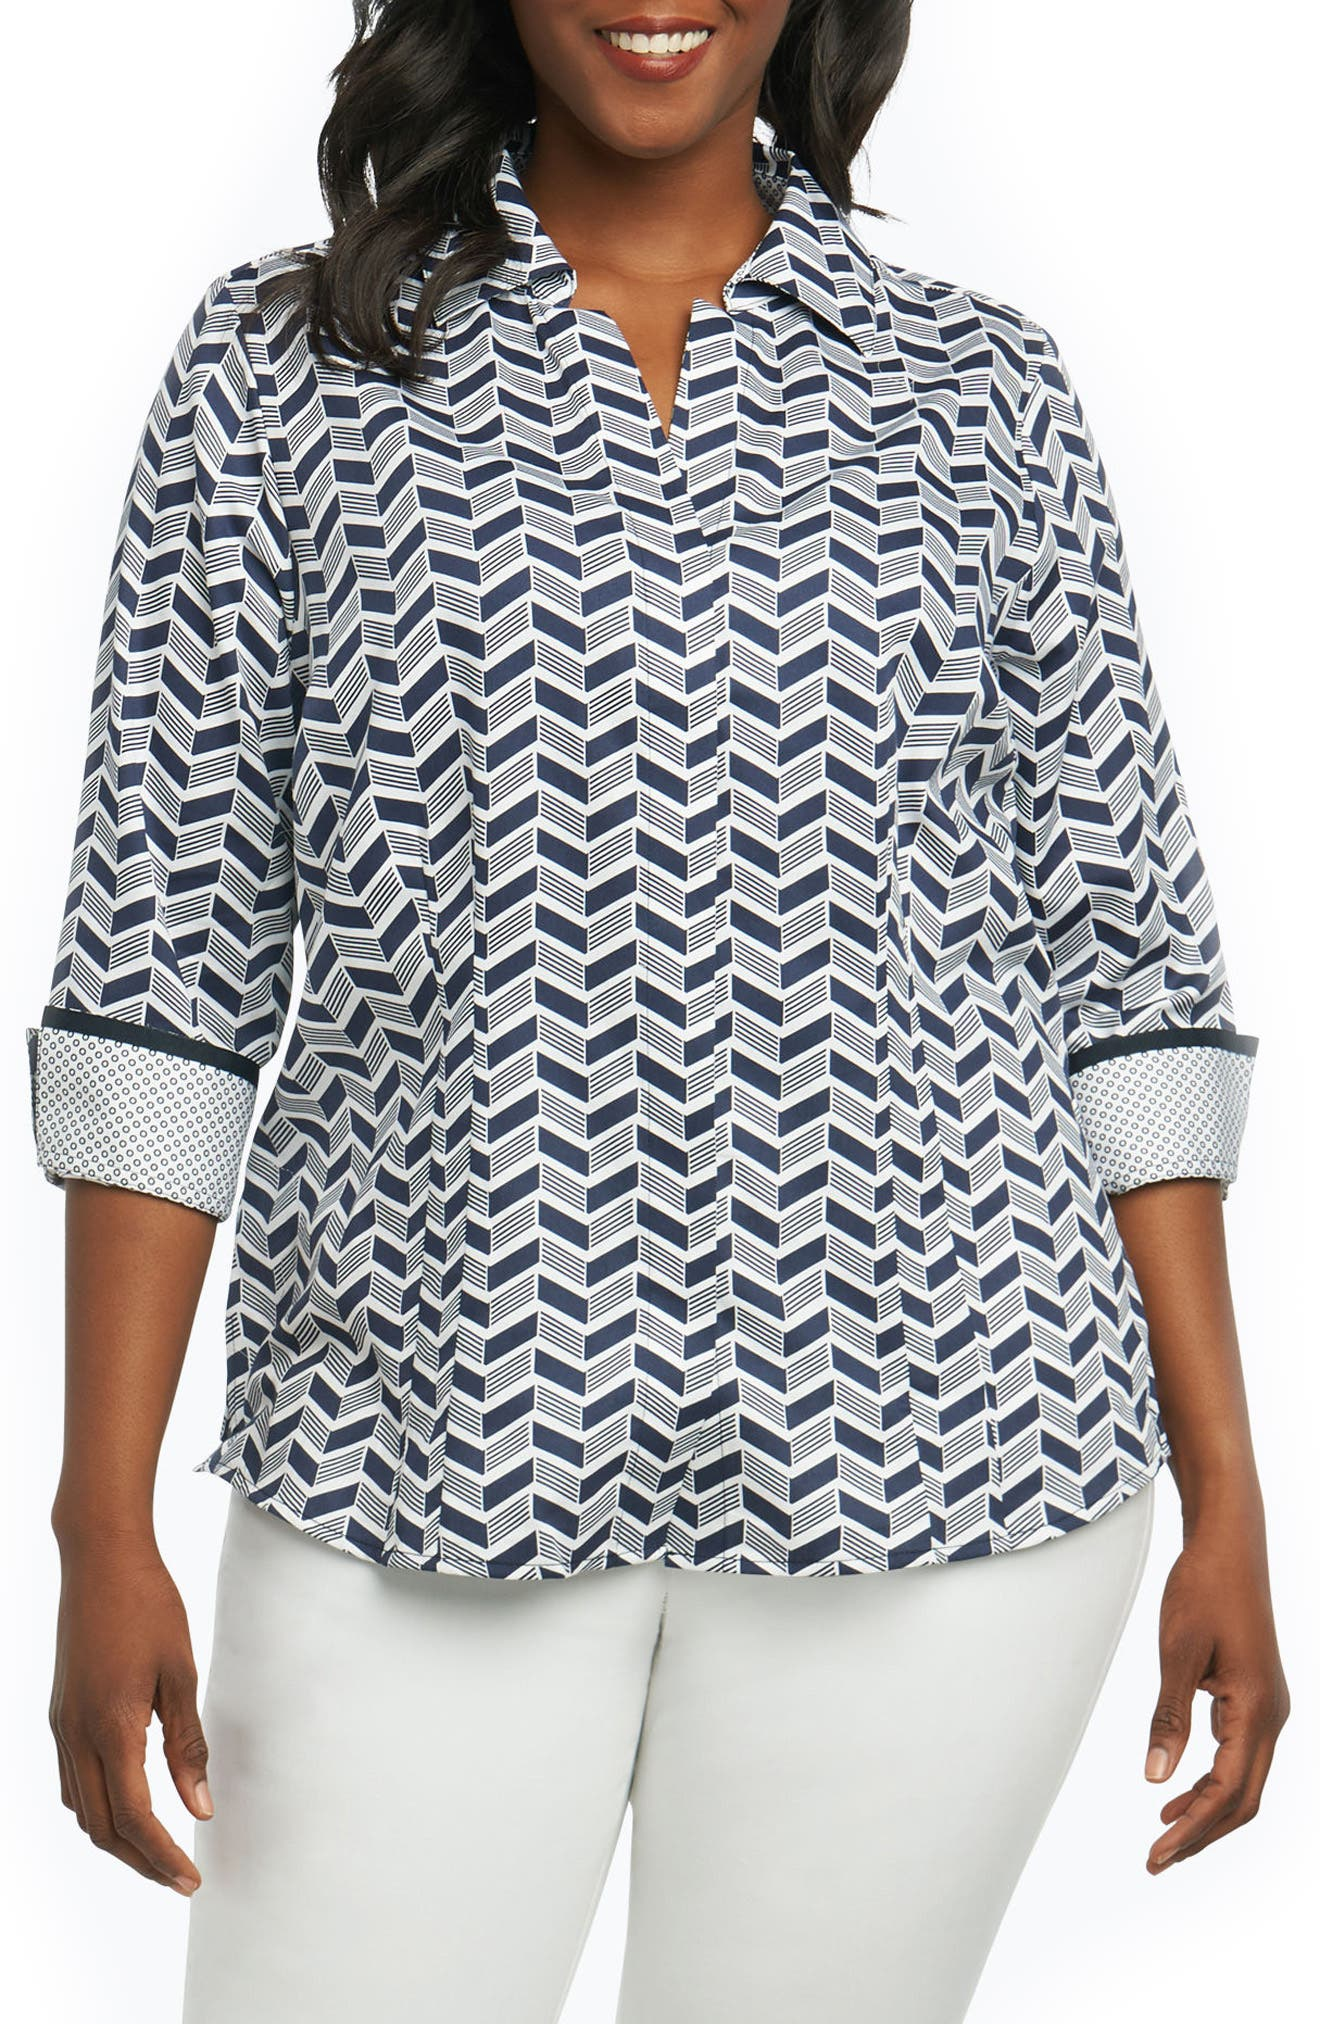 Taylor Chevron Non Iron Cotton Shirt,                             Main thumbnail 1, color,